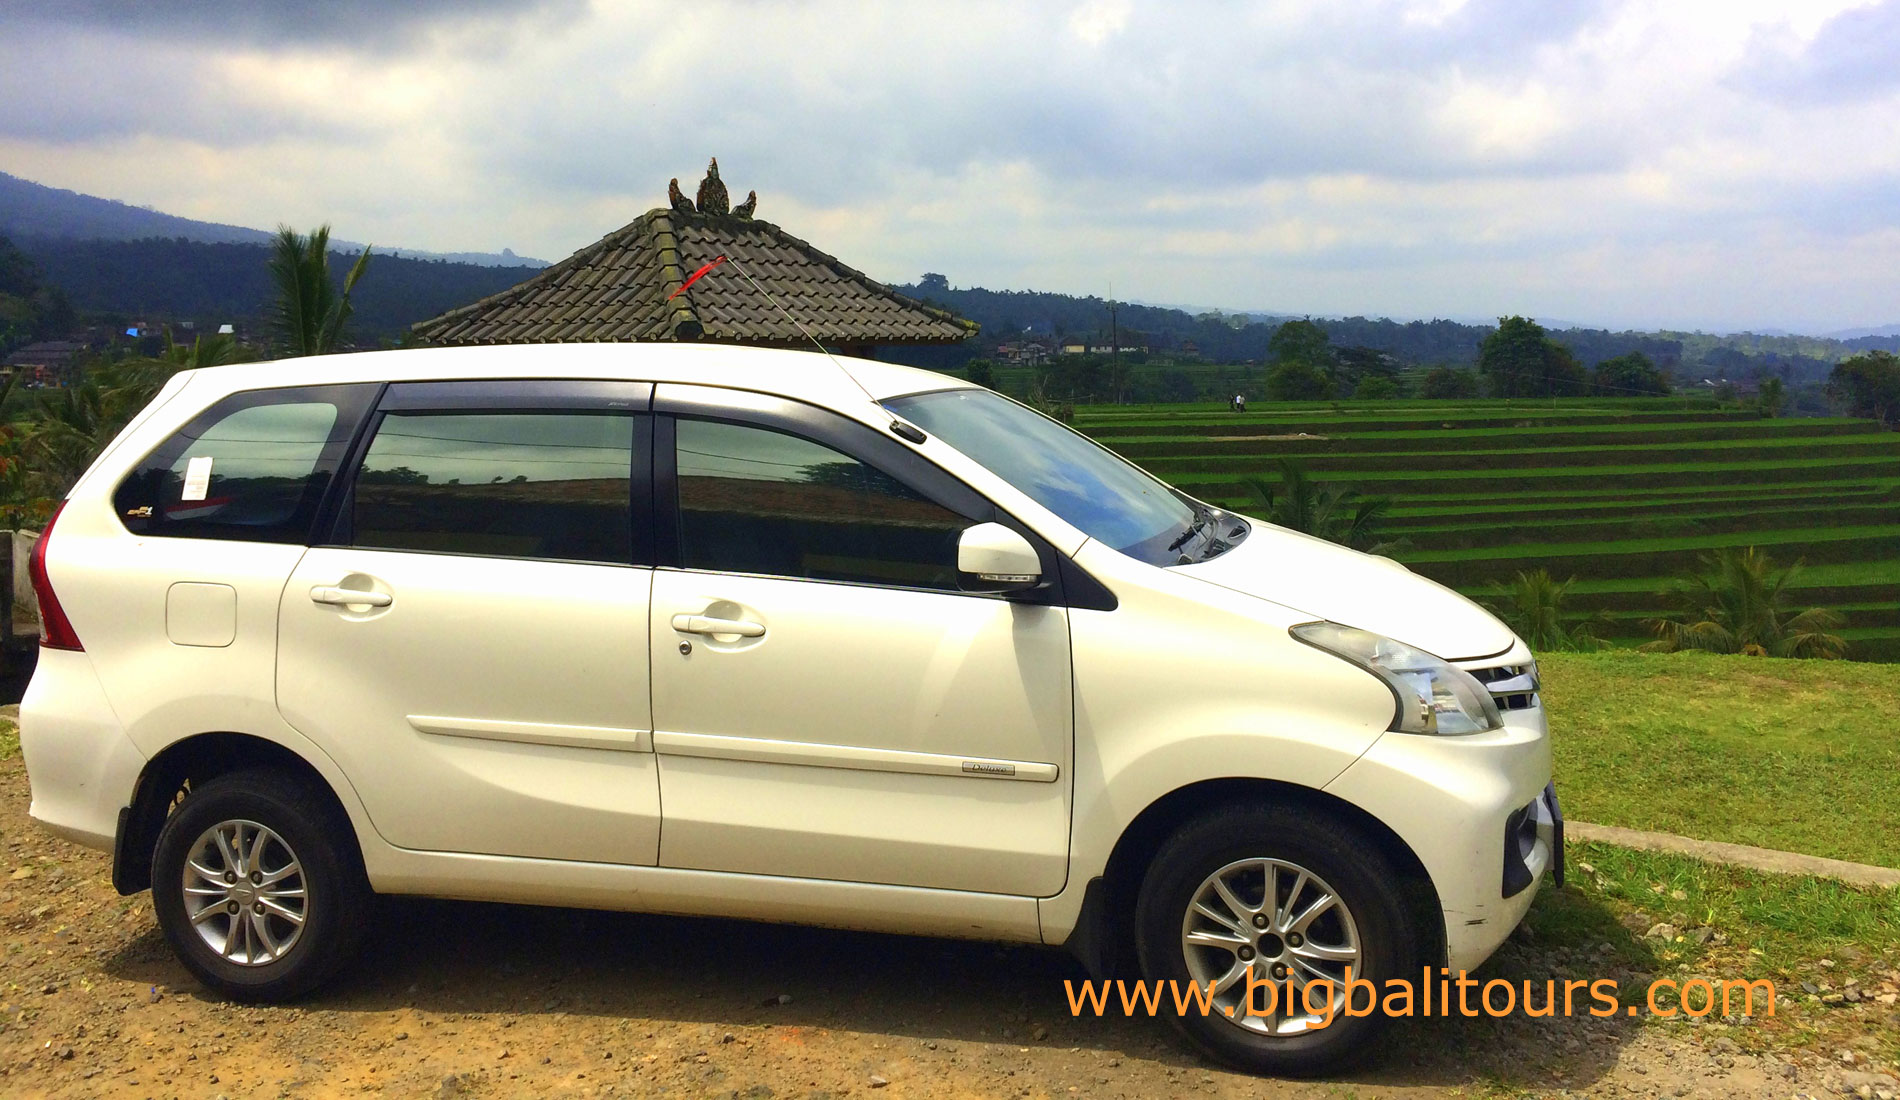 Bali Cheap Car Rental Activities Package 1 Roof Rack Avanza Tours